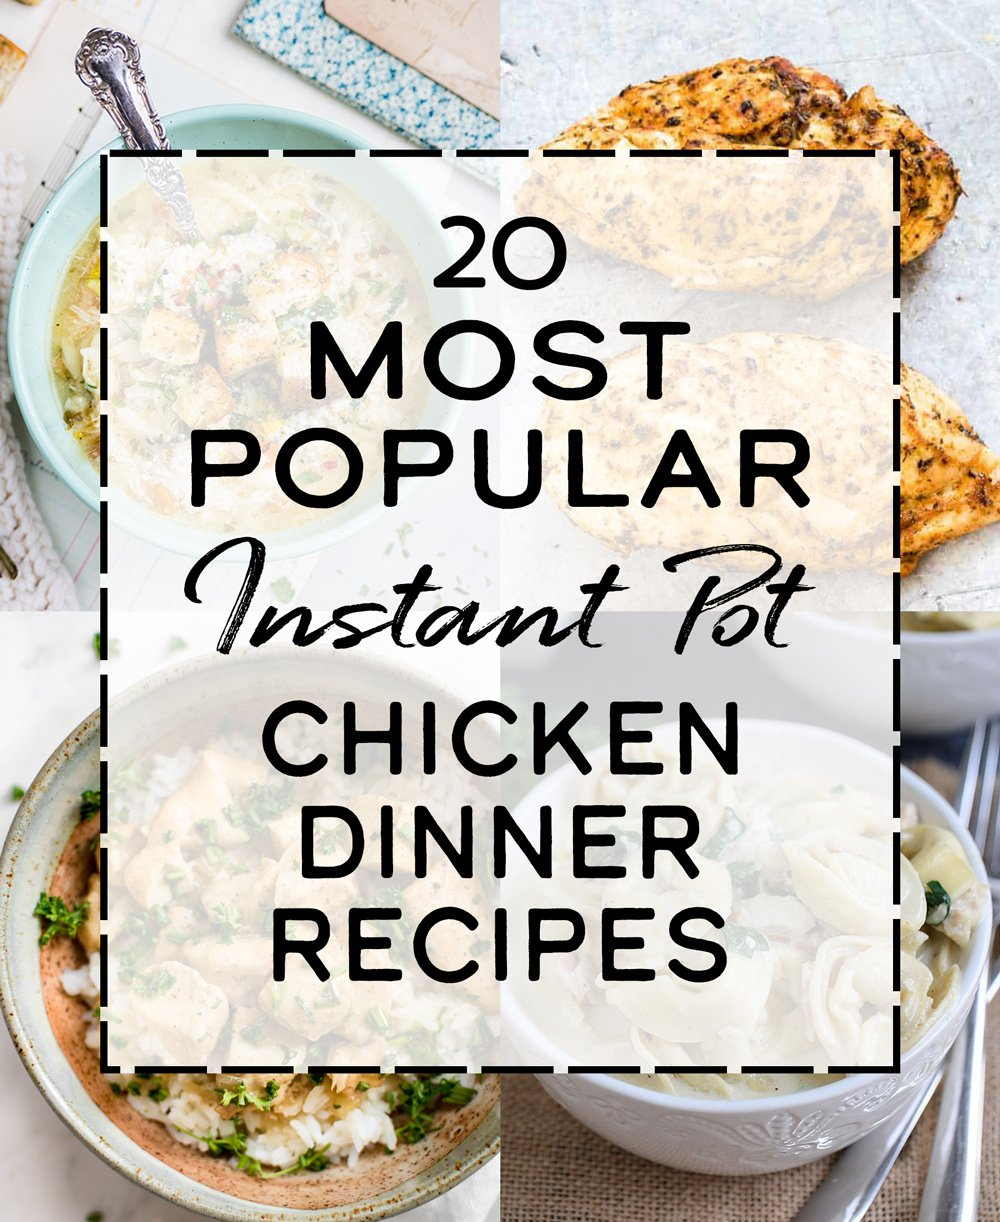 Cover photo with text for article 20 most popular instant pot chicken dinner recipes